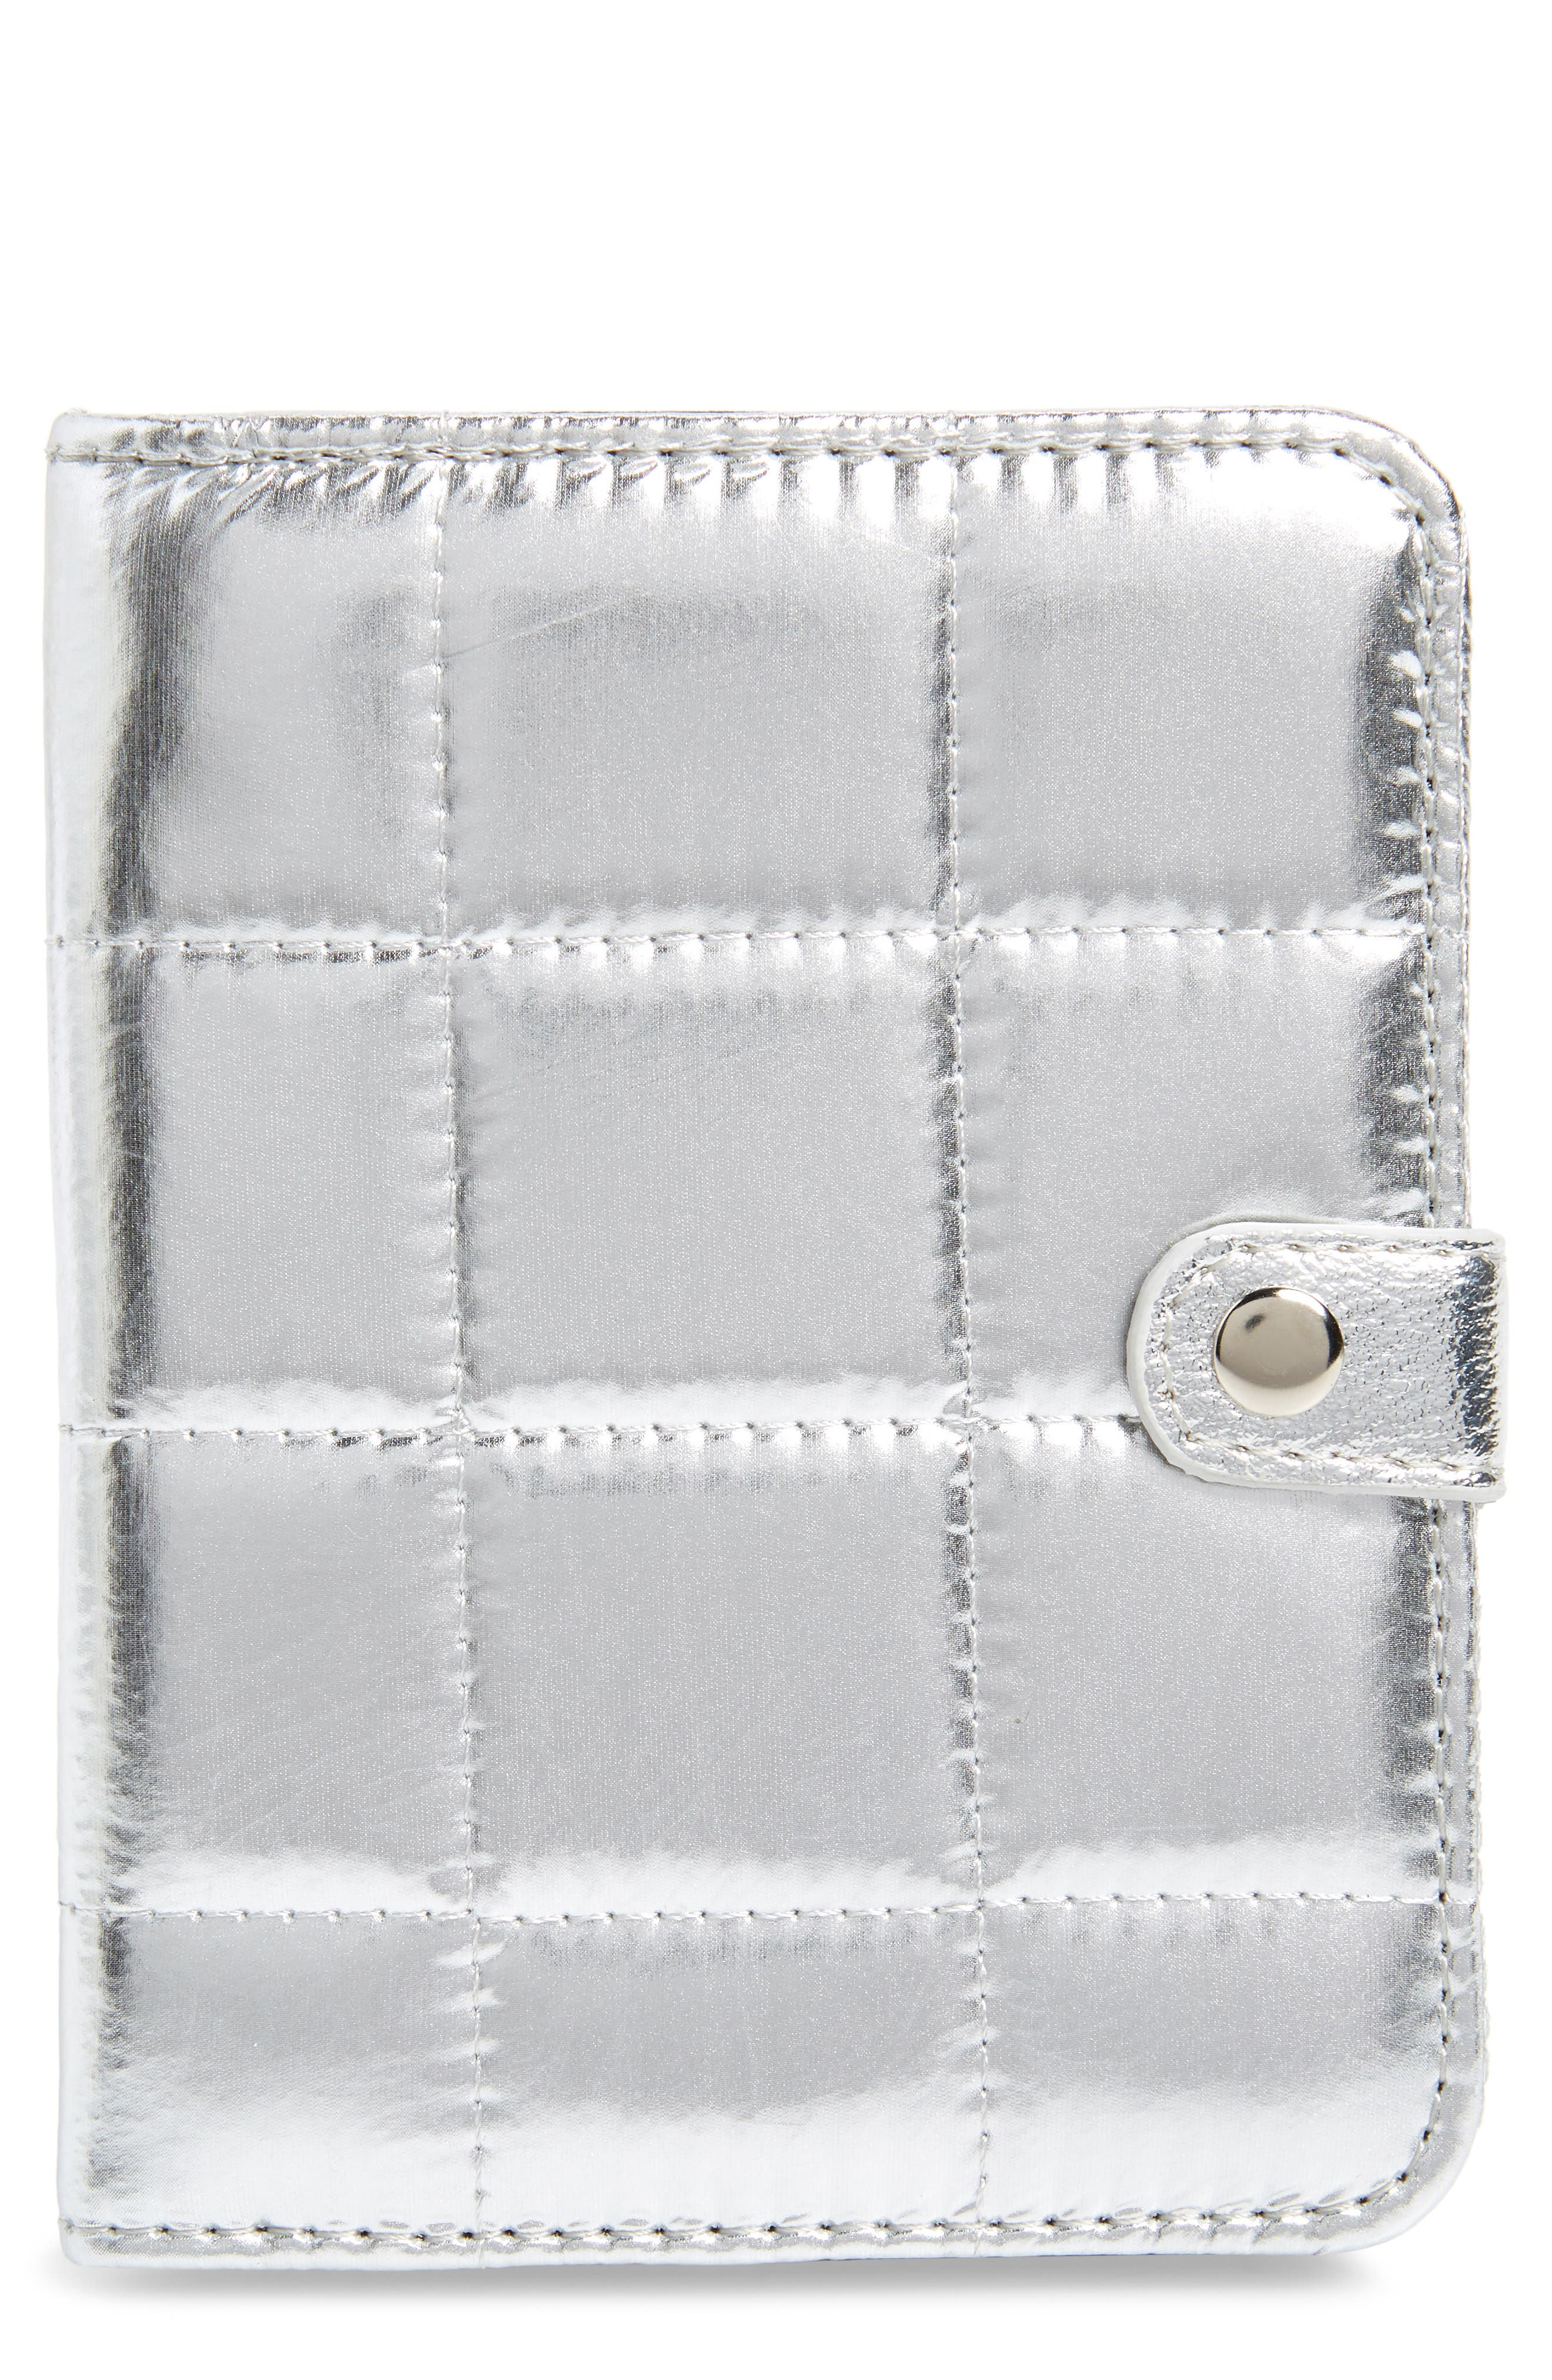 Metallic Puffer Wallet,                         Main,                         color, Silver